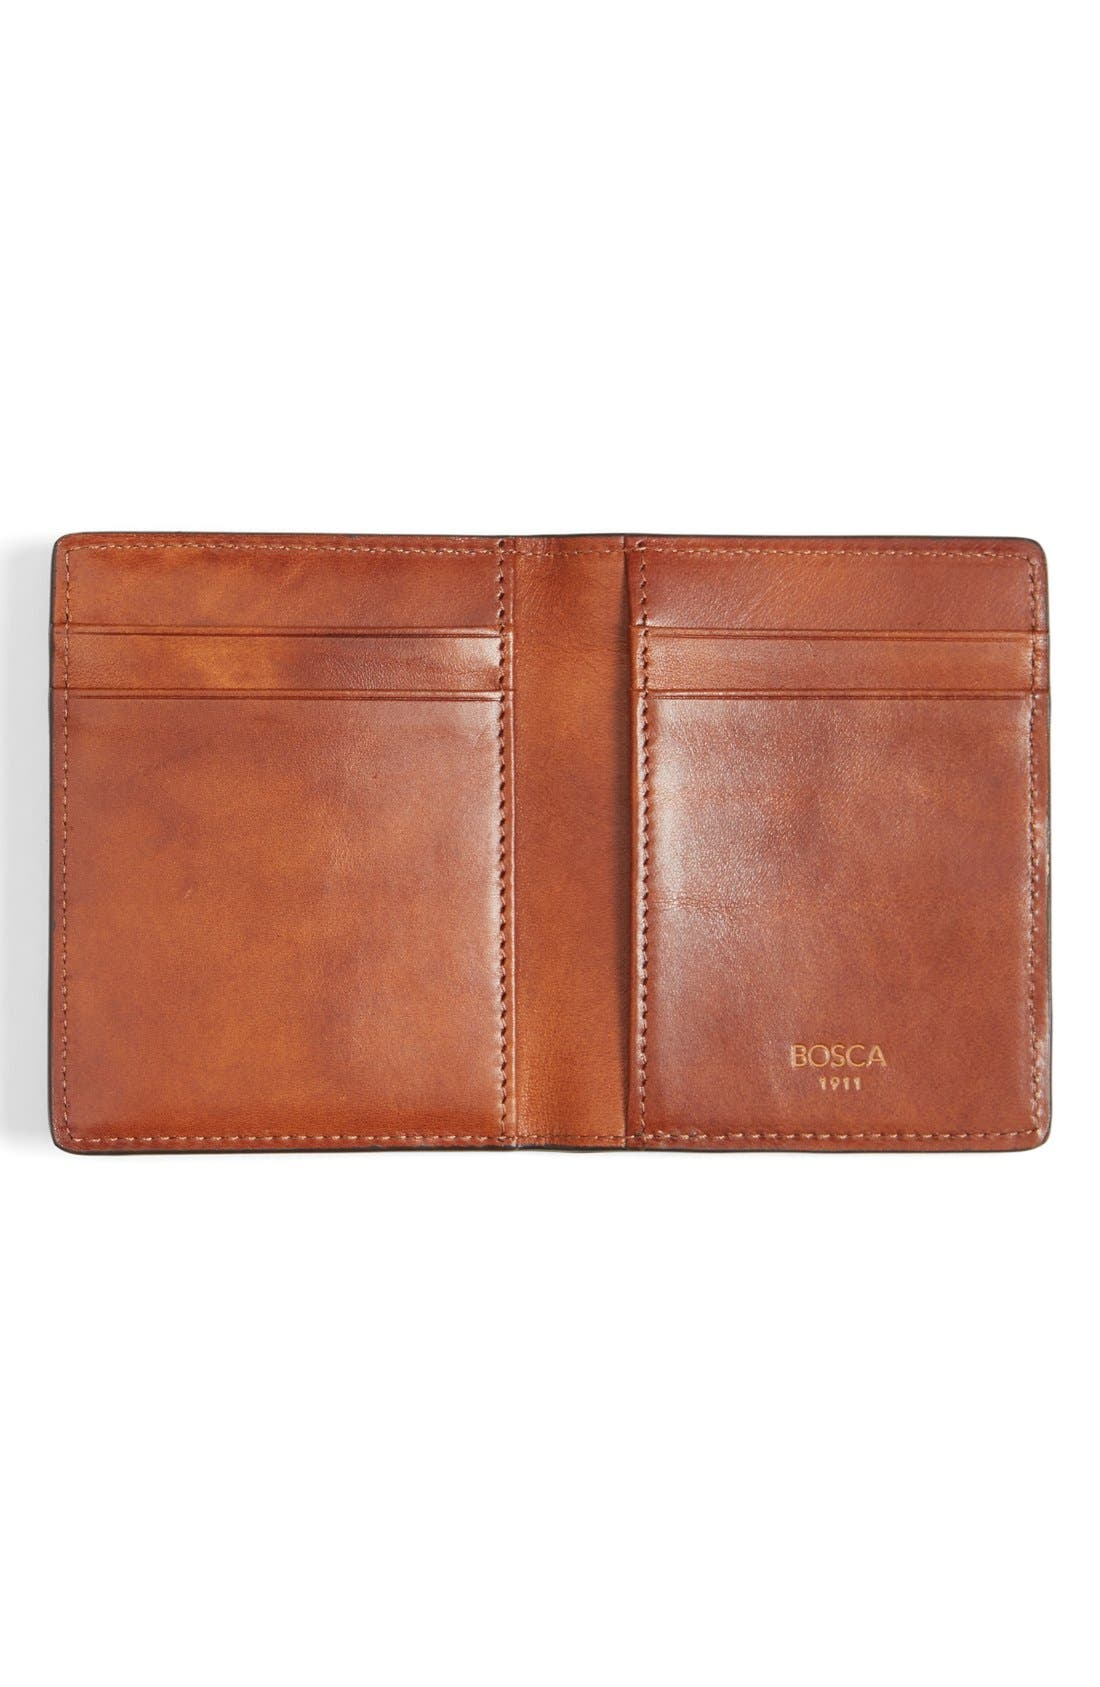 Leather Front Pocket Money Clip Wallet,                             Alternate thumbnail 3, color,                             233